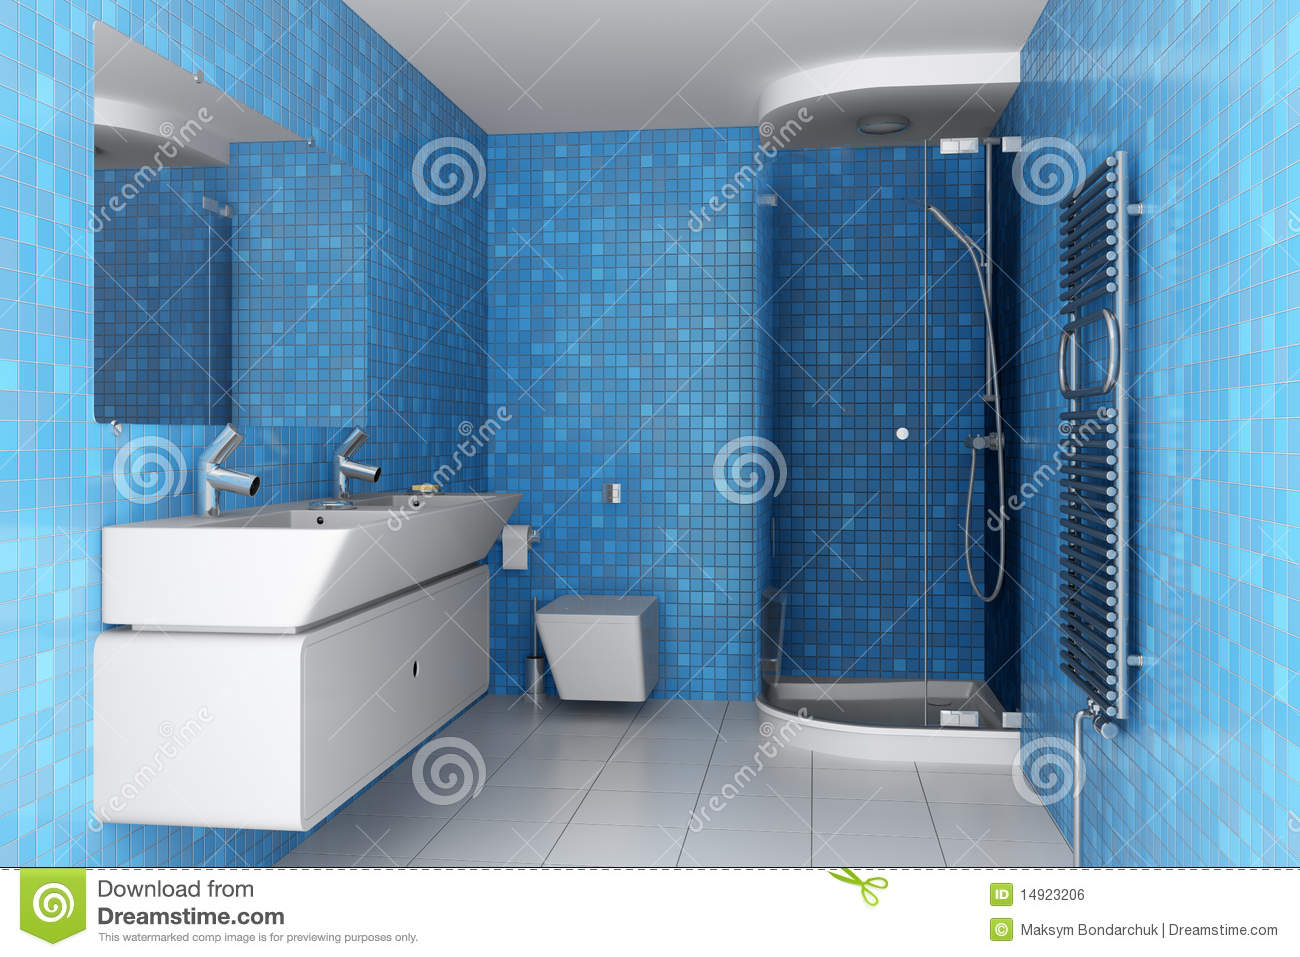 Modern Bathroom With Blue Tiles On Wall Stock Photo - Image of ...